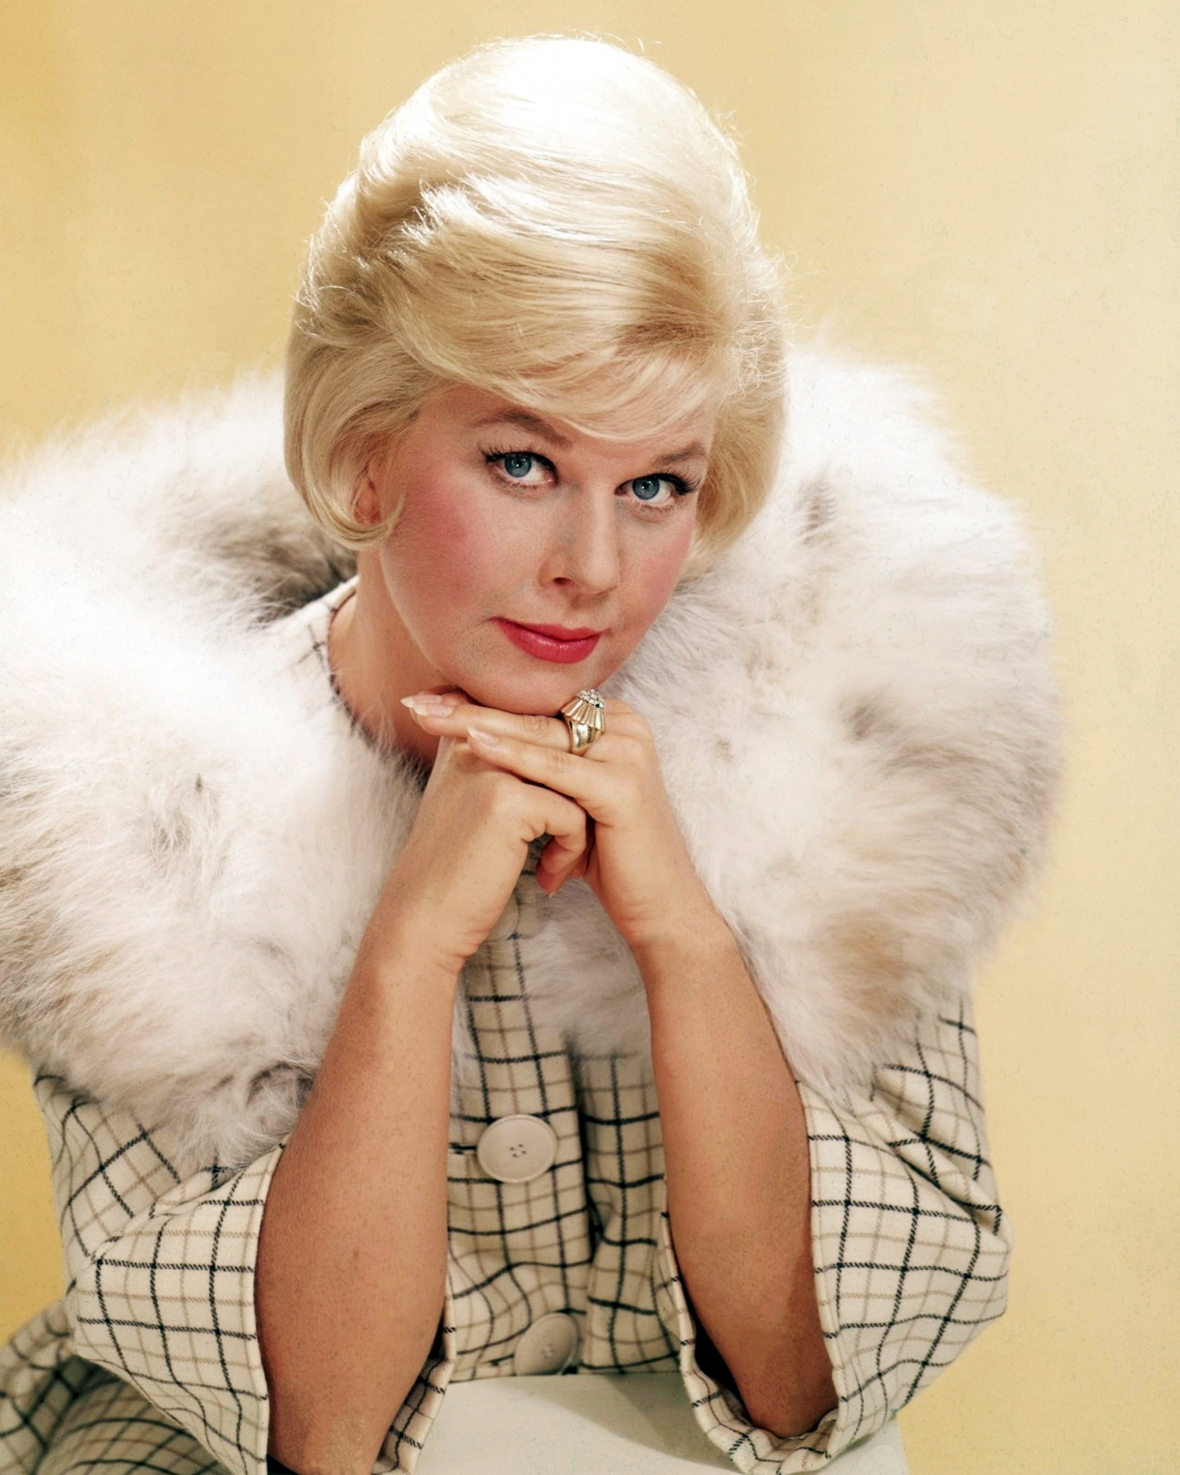 doris day getty images